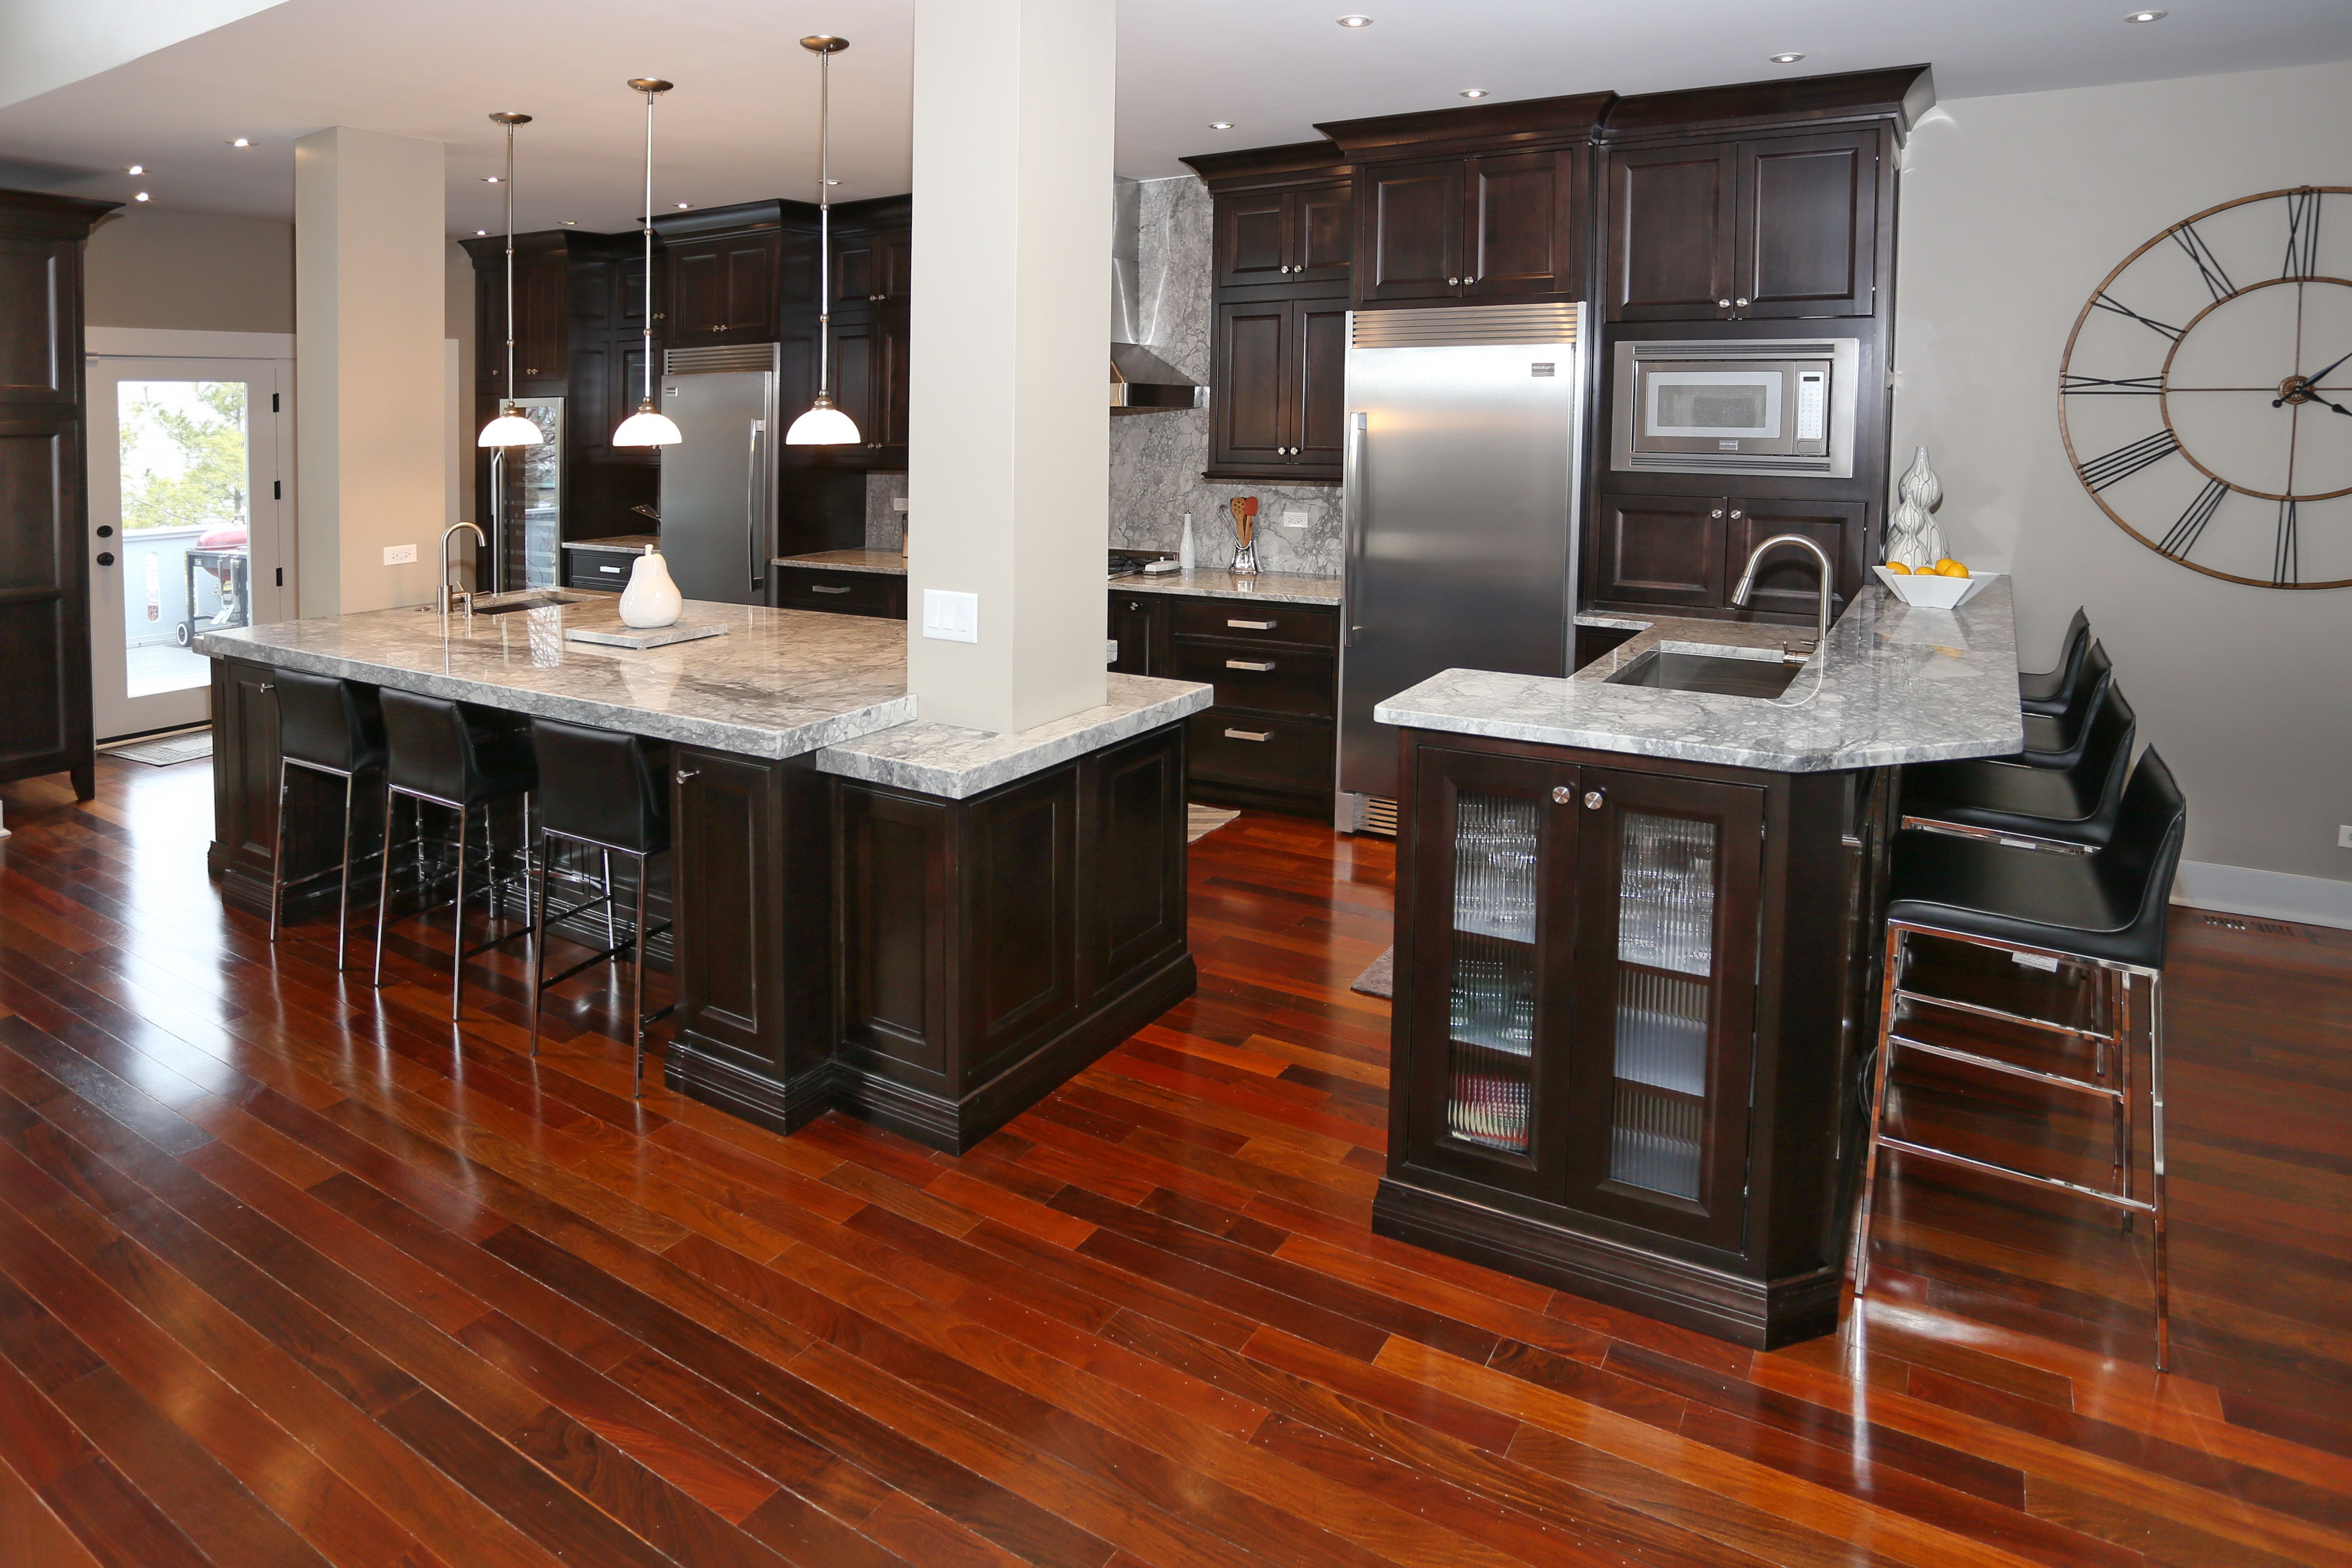 Decora Cabinets With Hucheson Beaded Inset Doors Cherry With Teaberry Finish Quartzite Super Wh Kitchen Design Kitchen Cabinets Brands Kitchen Cabinet Trends